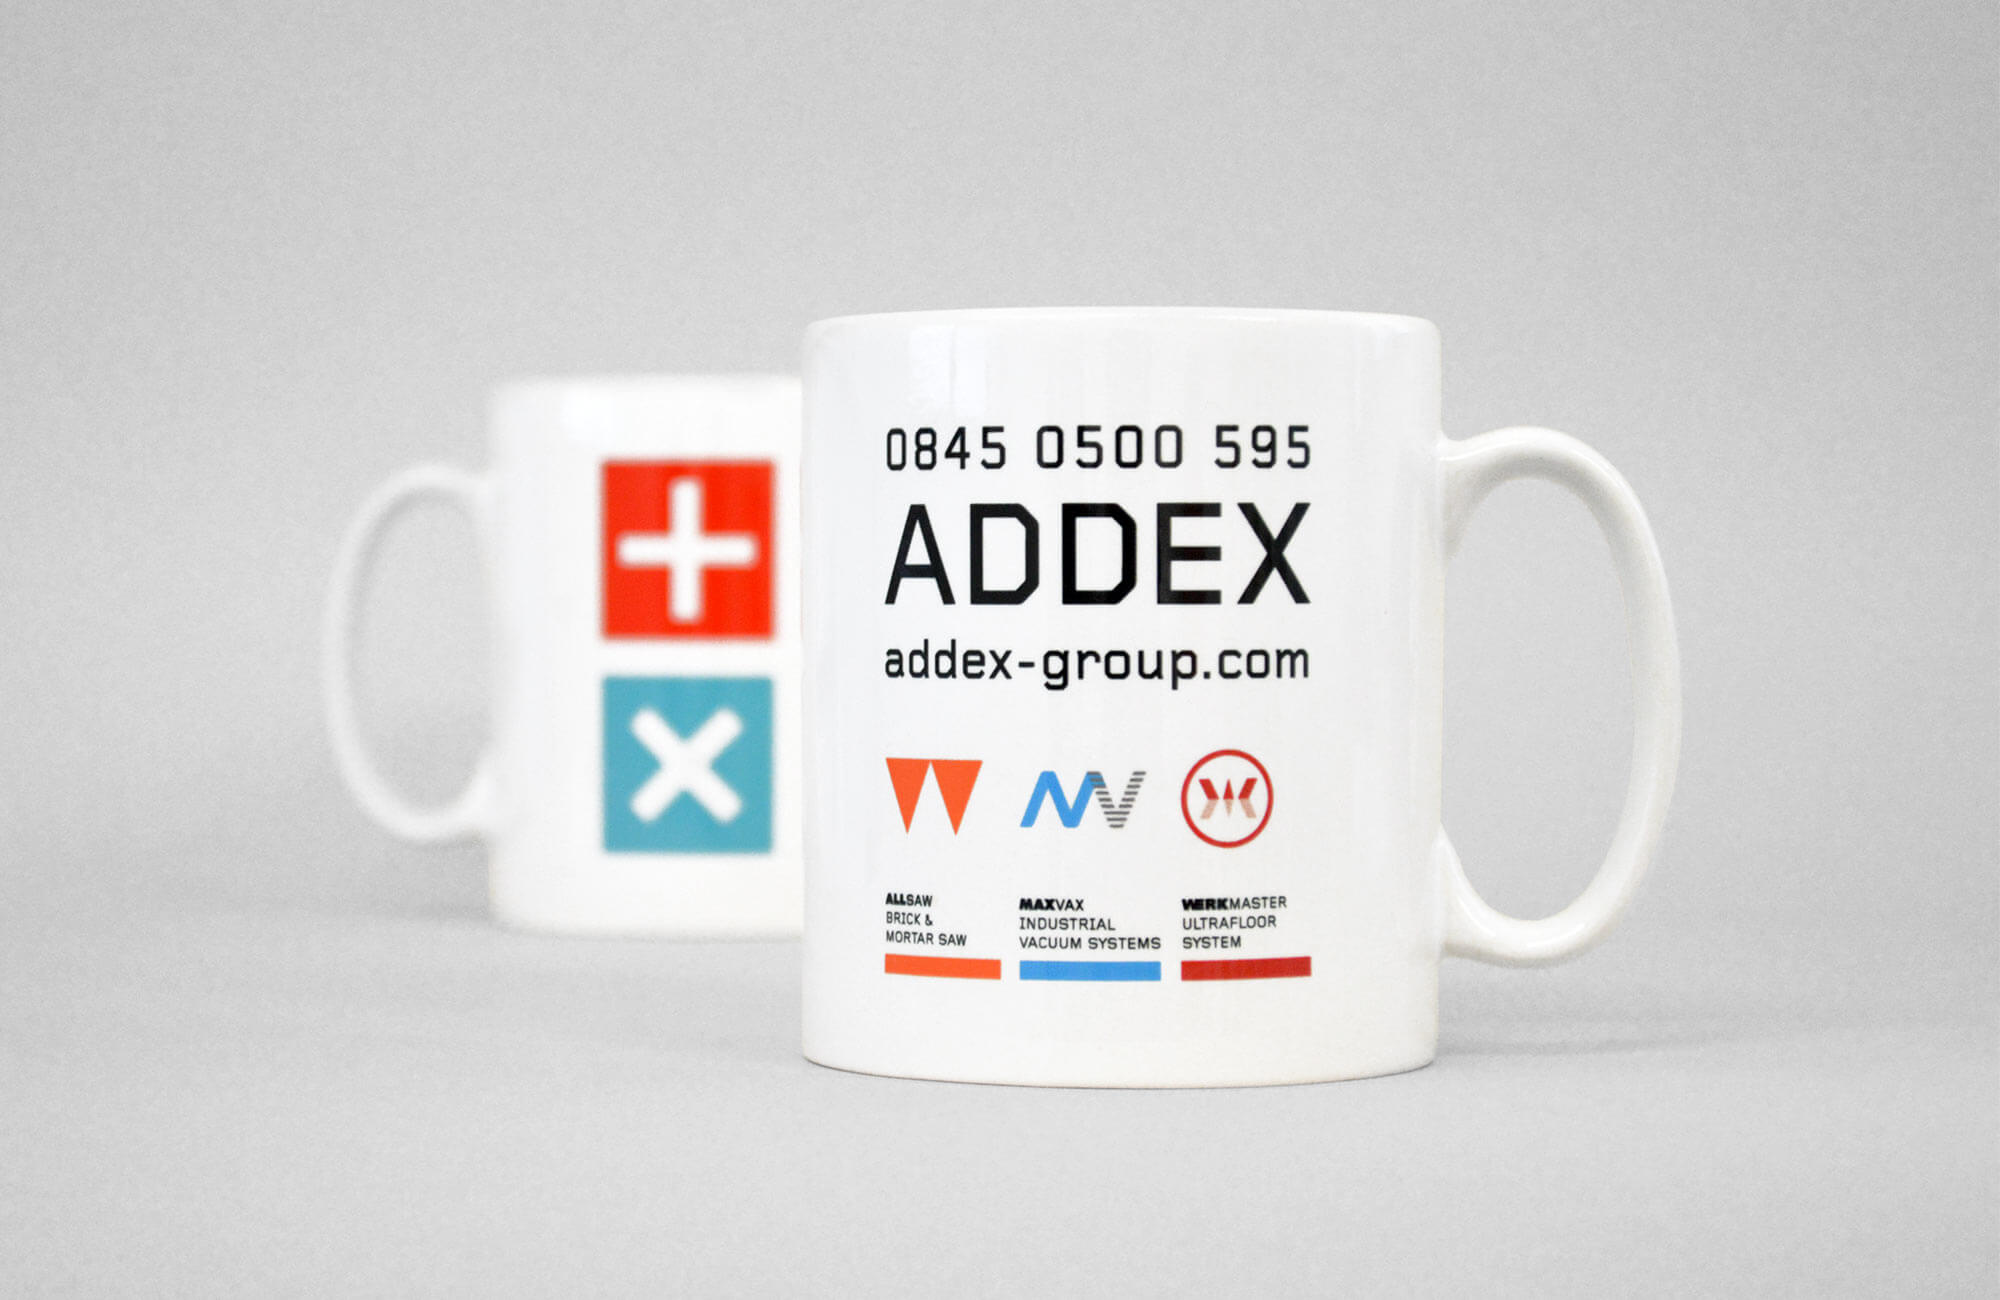 Addex Group Branded Mugs